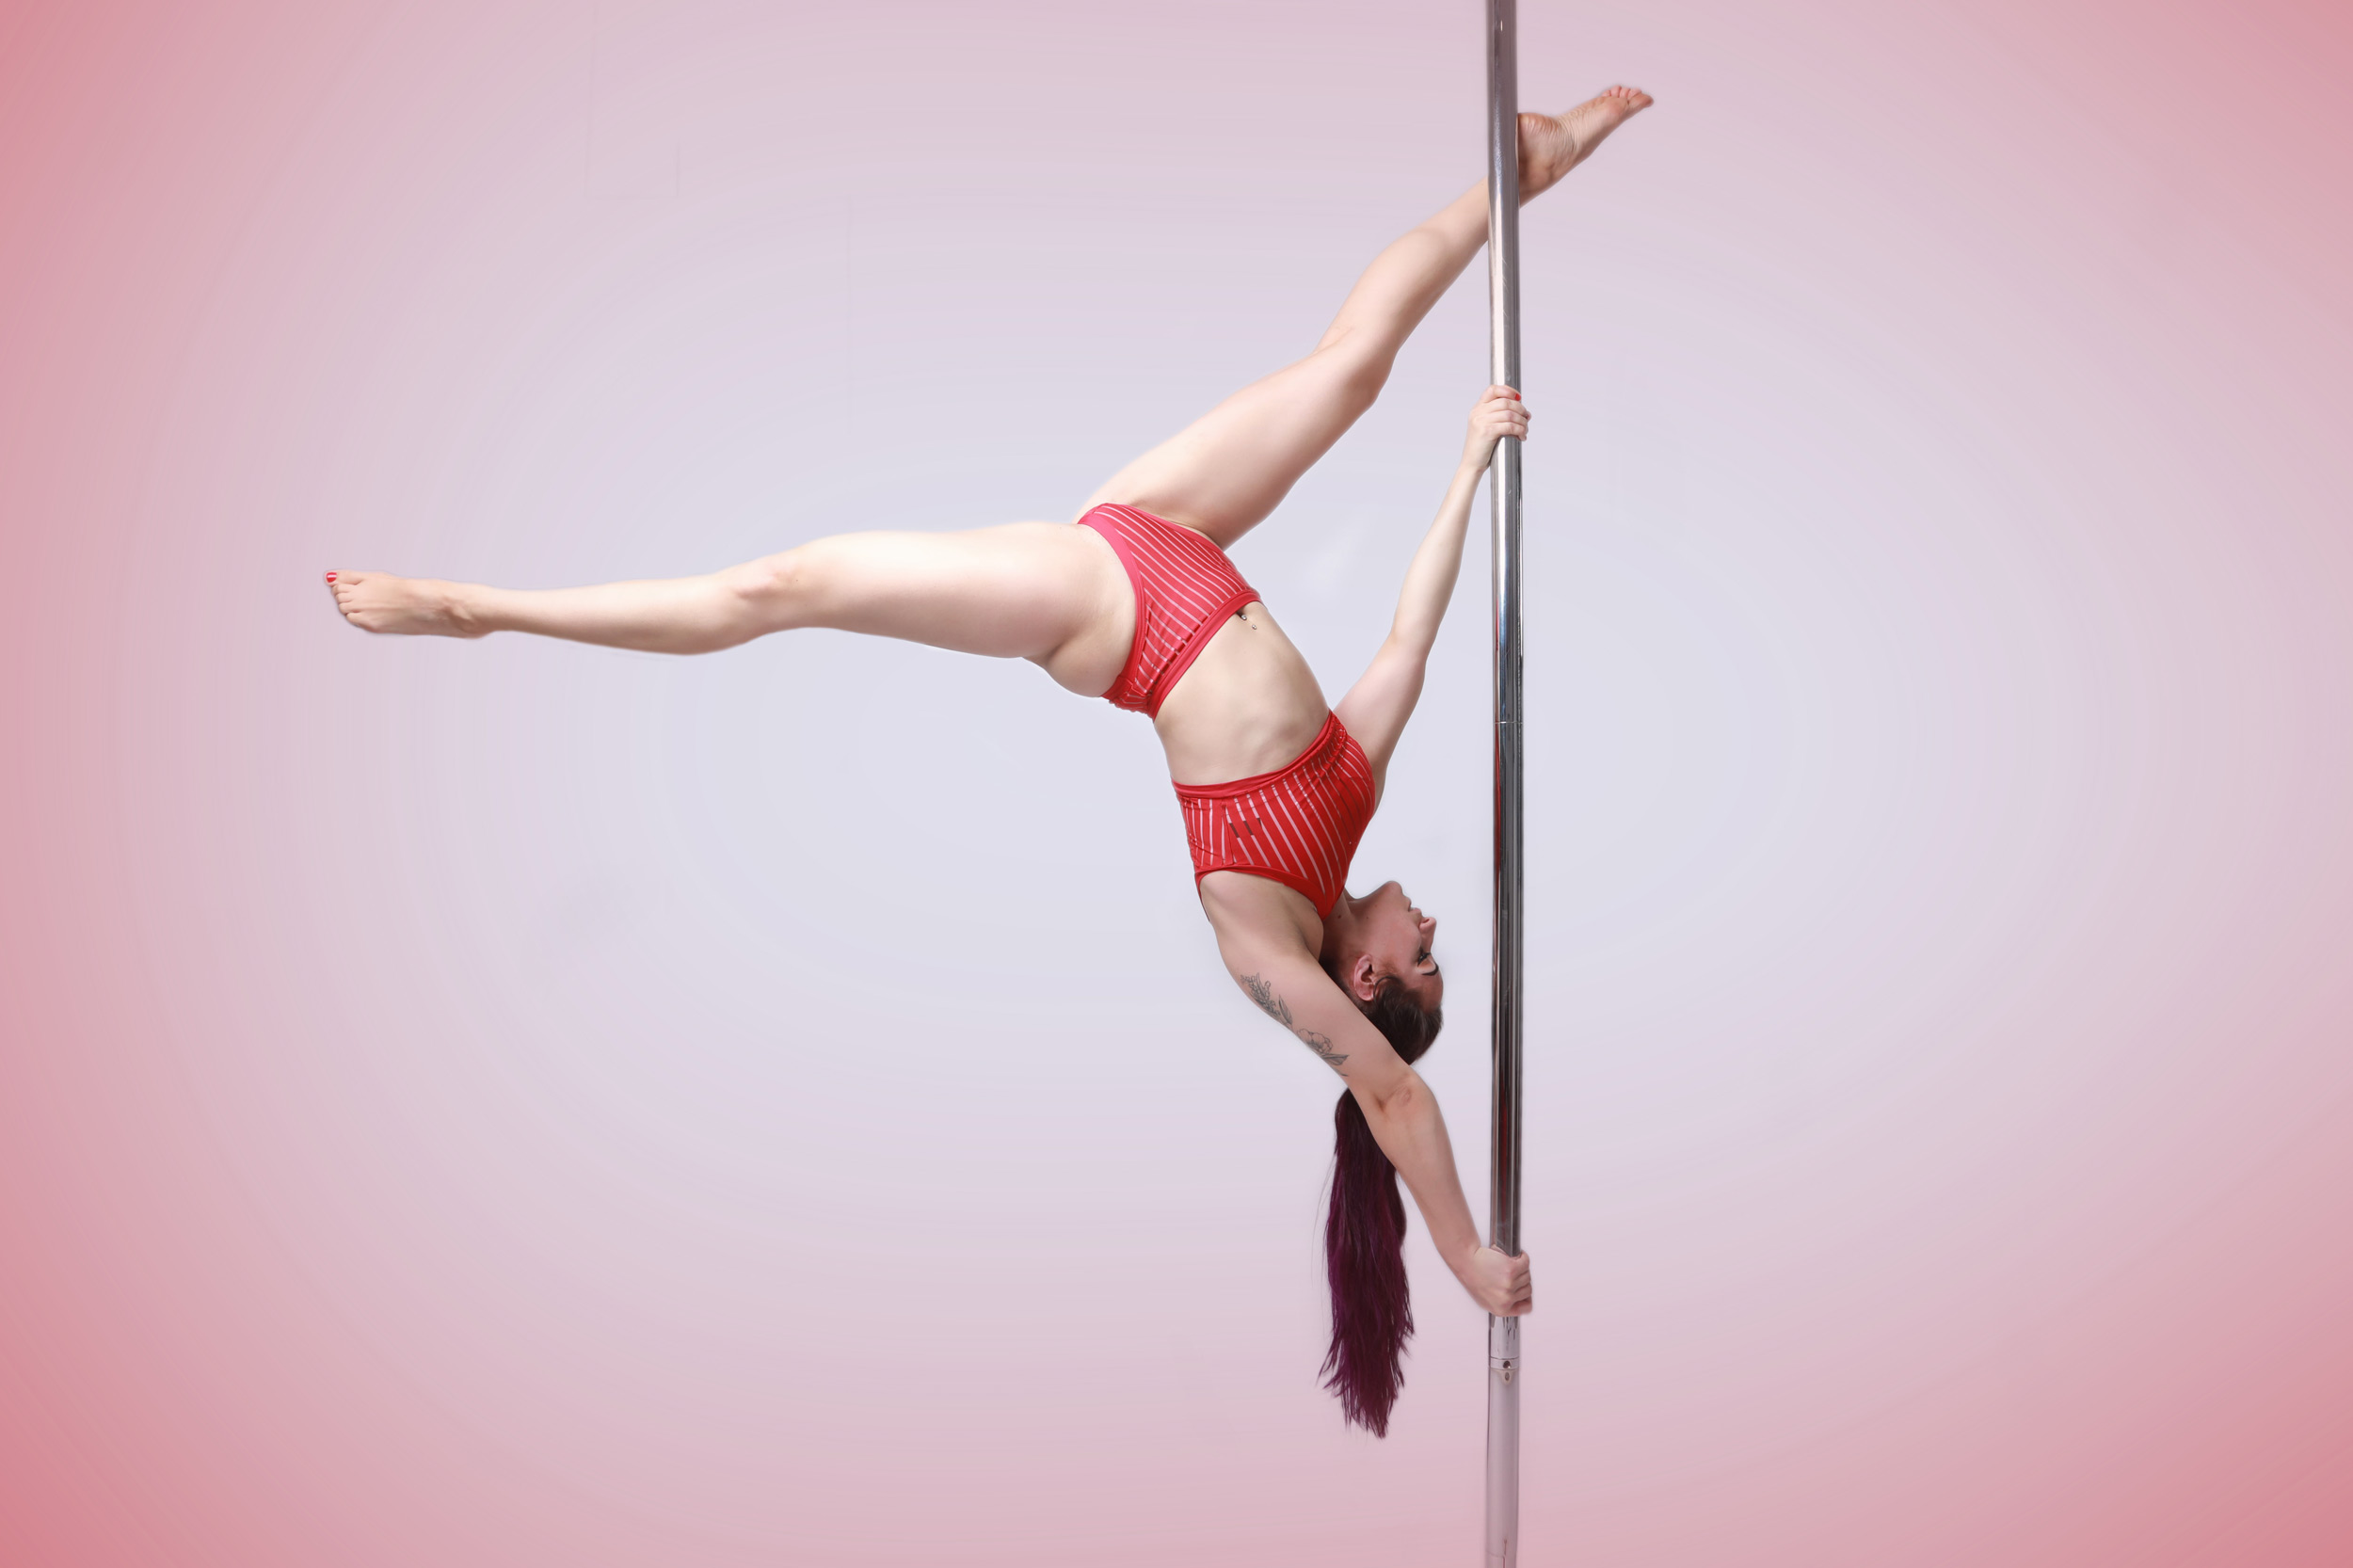 The Pole Hub instructor Viktoria F holding a pose on a pole